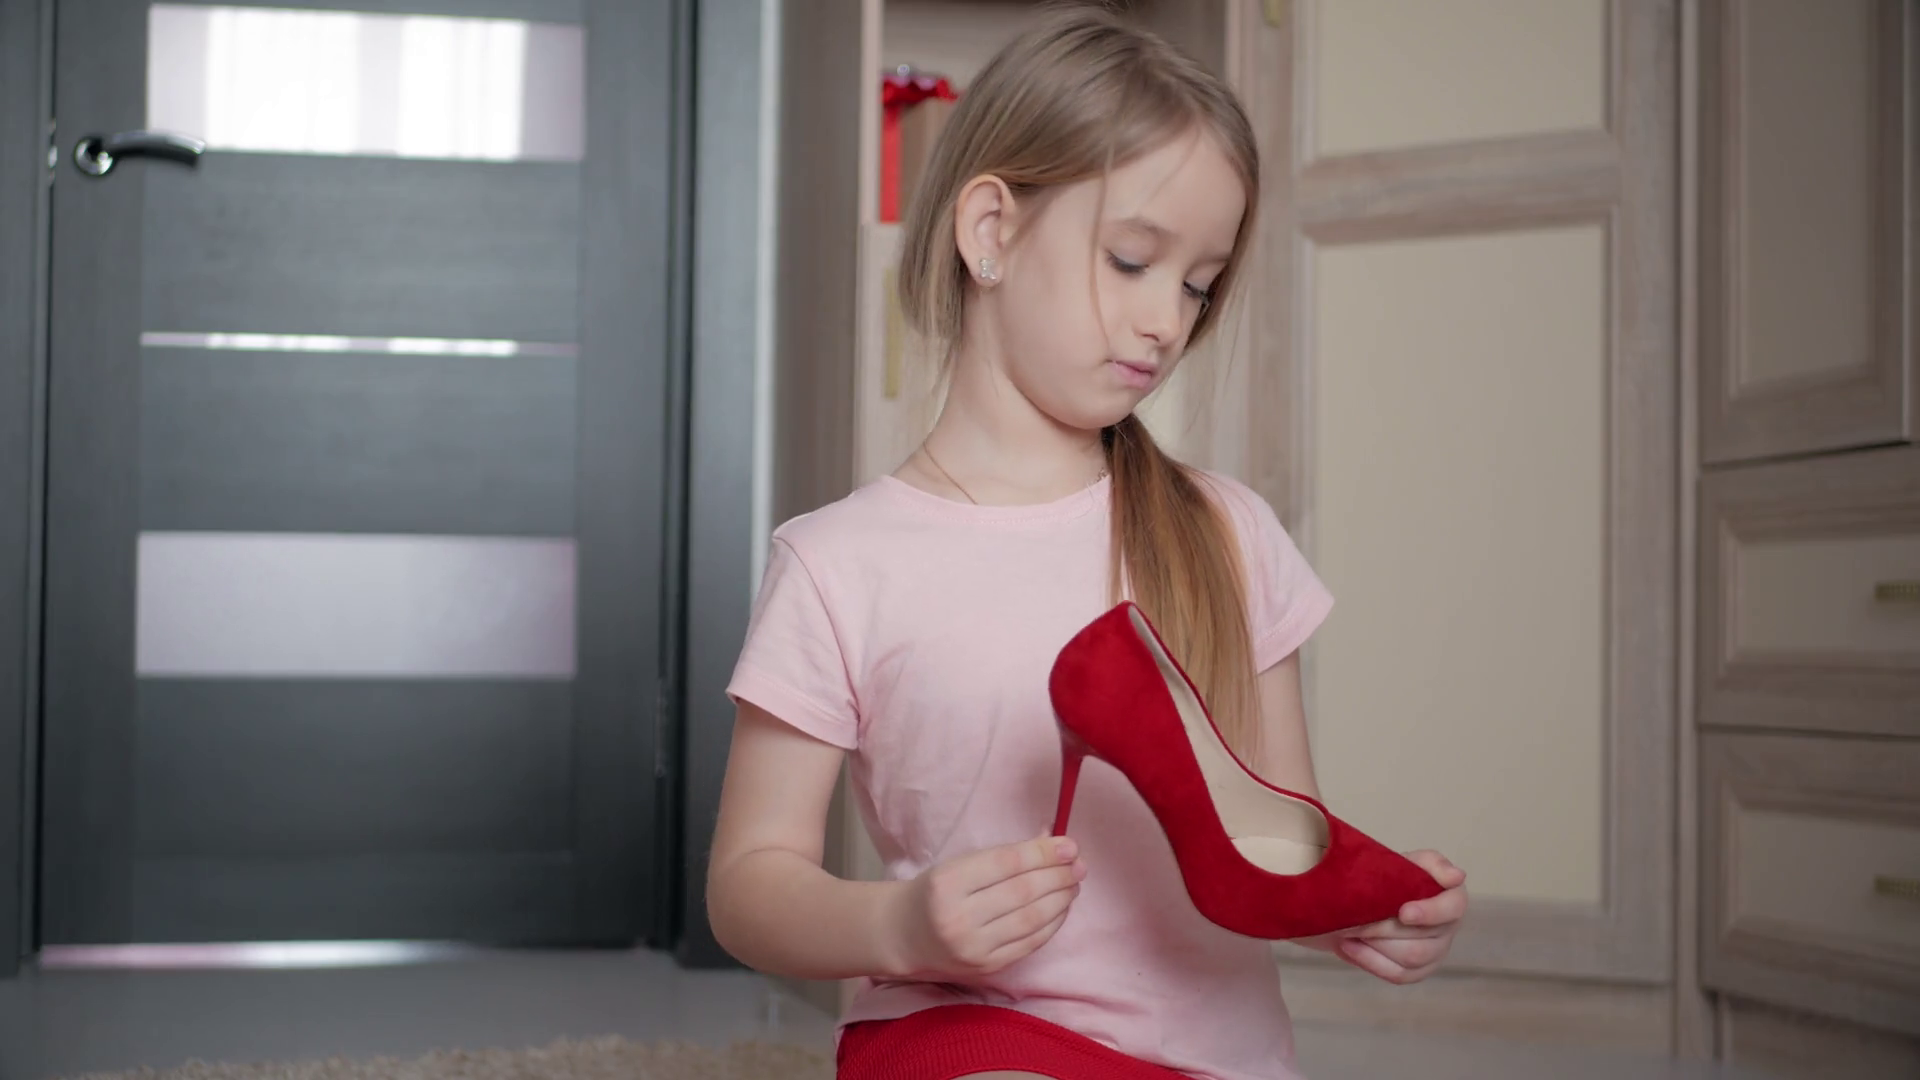 Little girl on the floor at home trying mom's red high heel shoes.